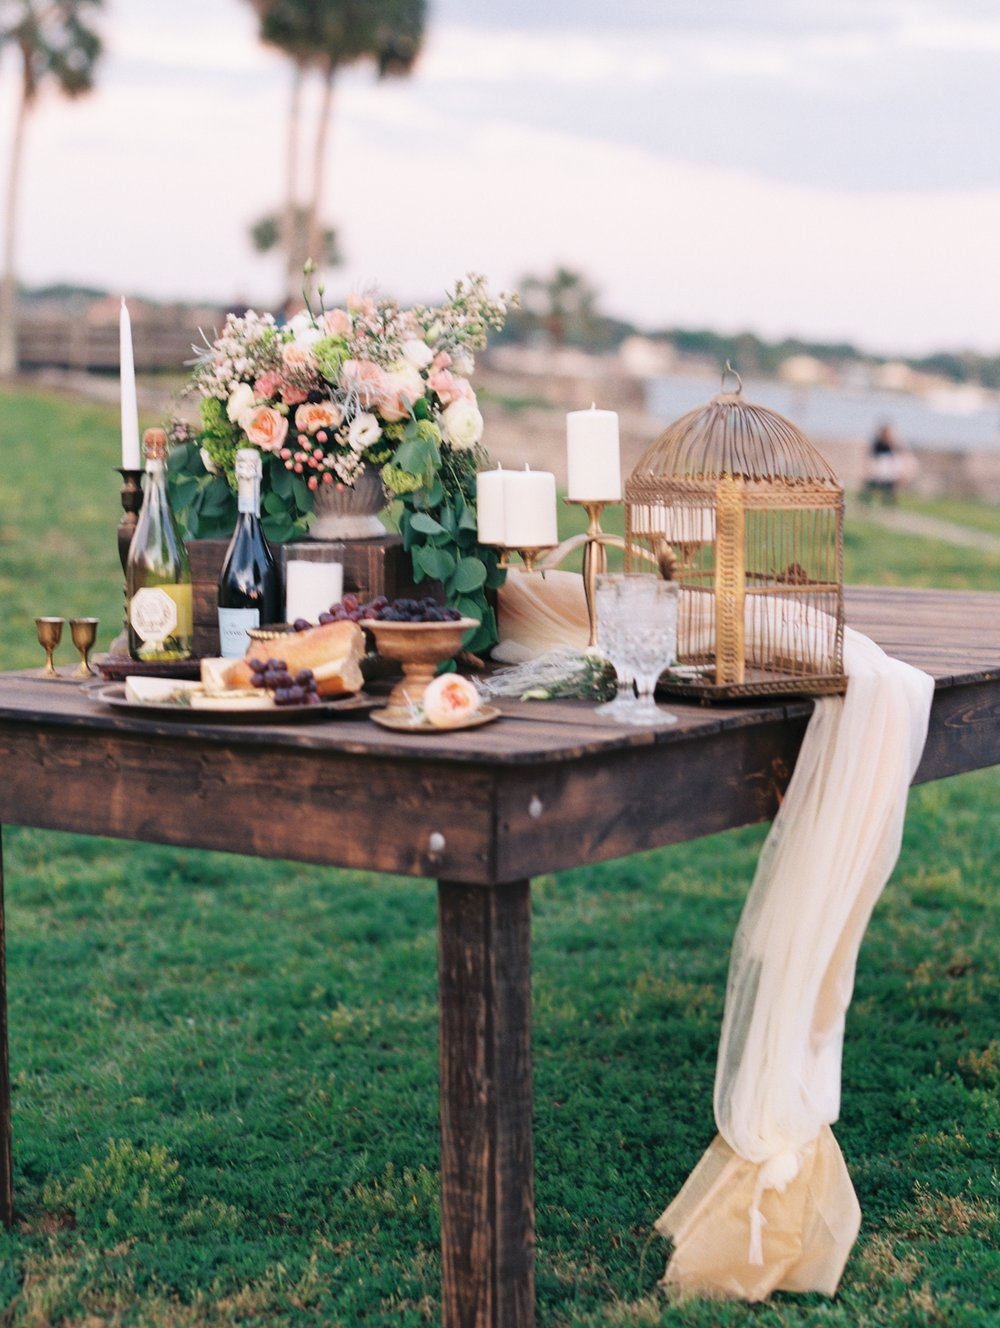 St. augustine, castillo de san marcos styled wedding bridal photo, food table